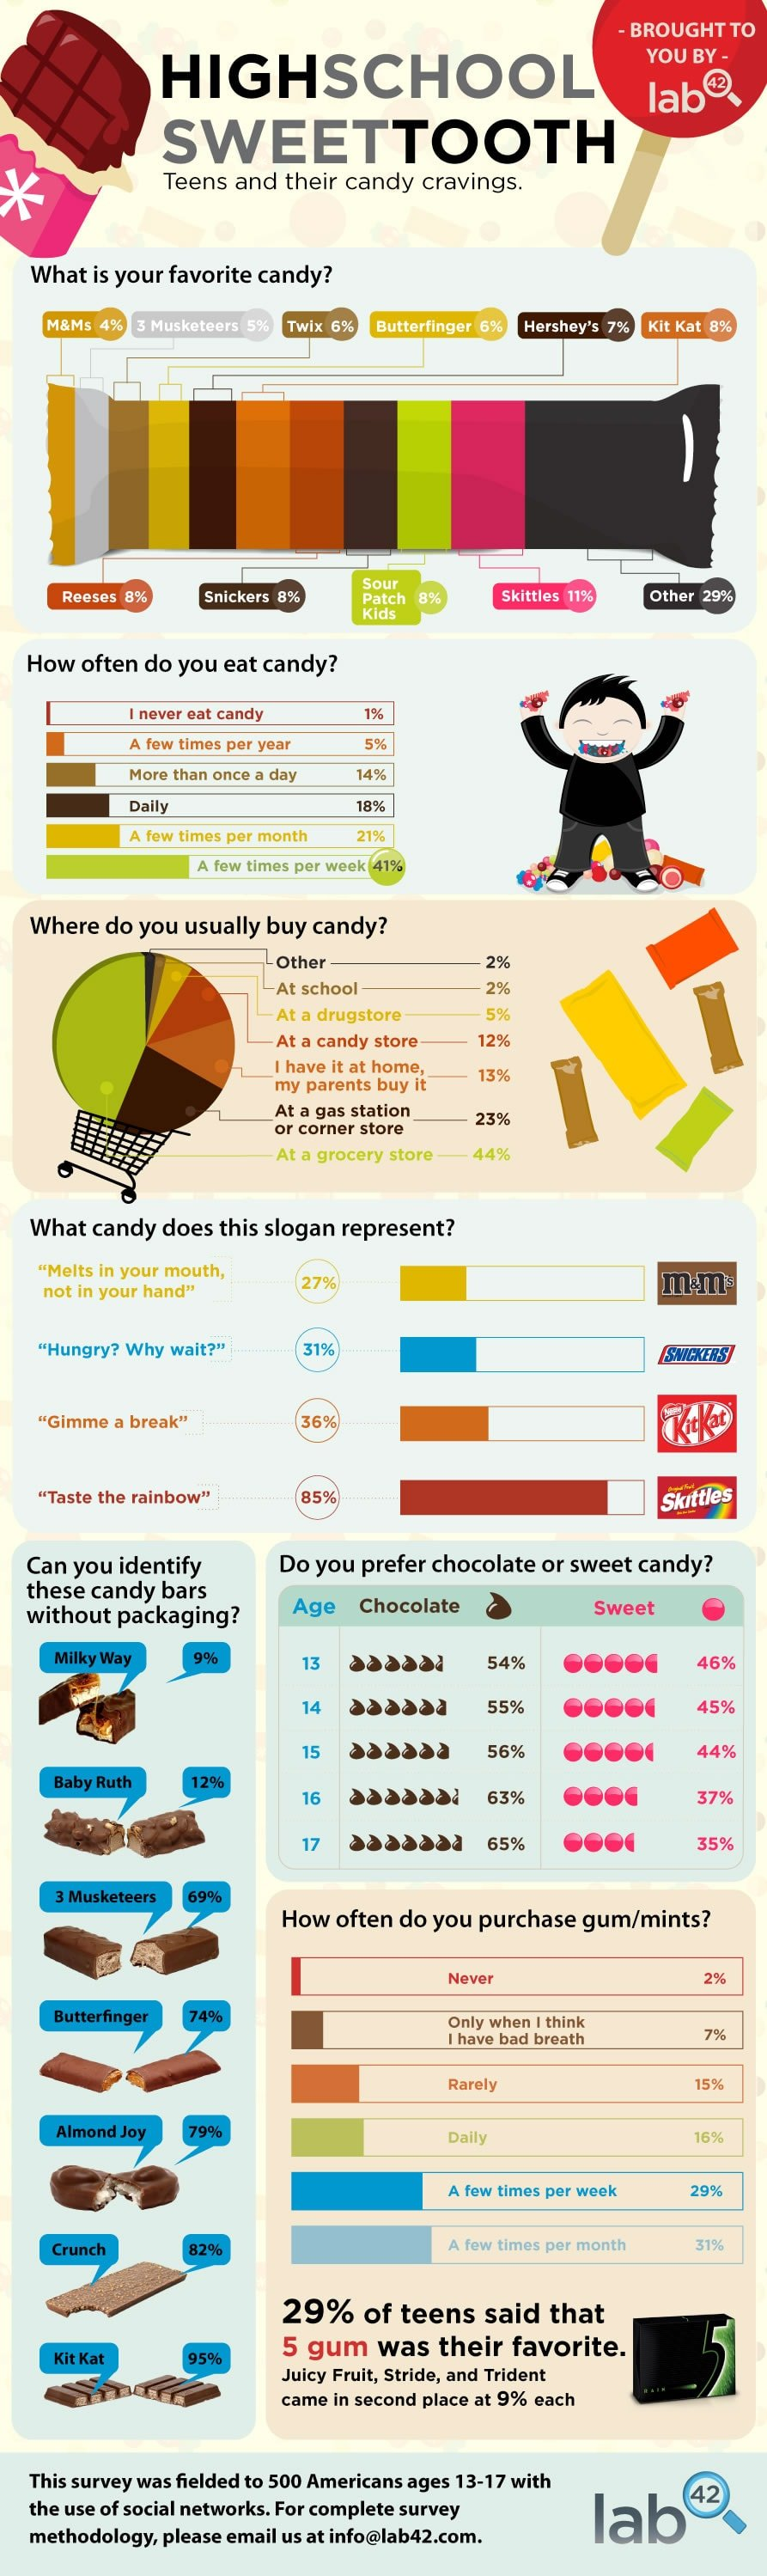 Teens and Their Candy Cravings